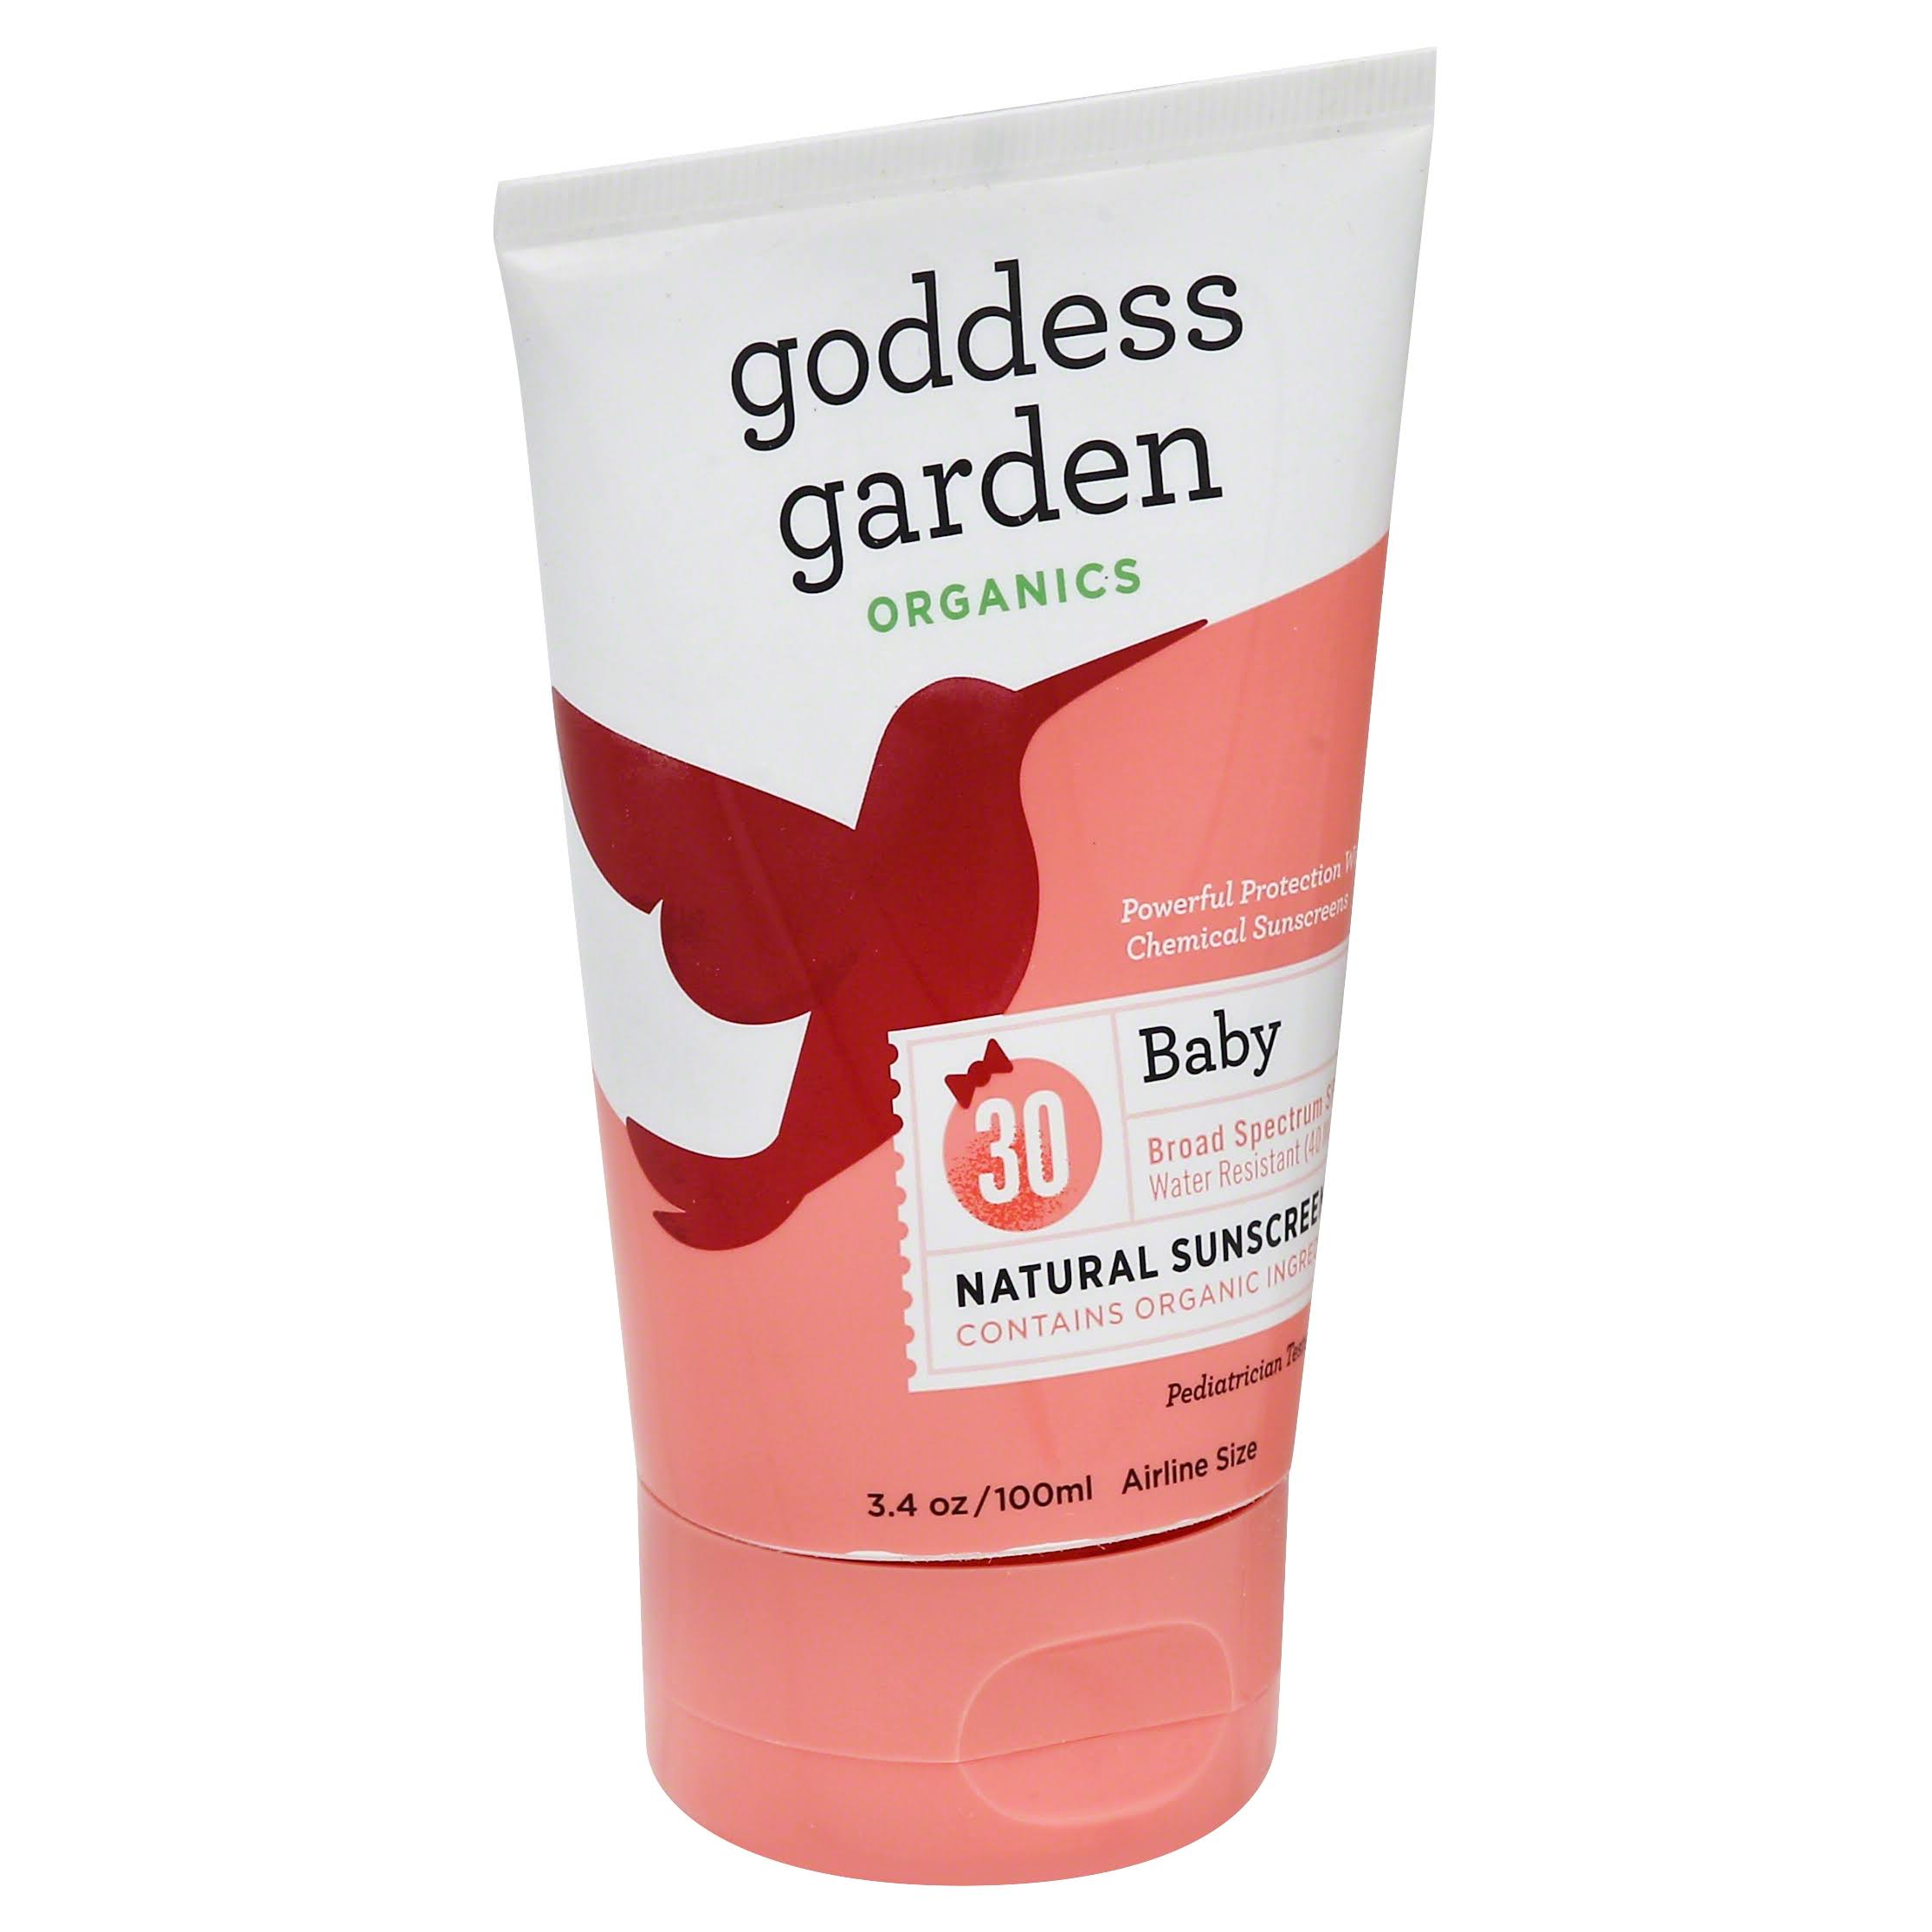 Goddess Garden Baby Natural Sunscreen Lotion - SPF 30